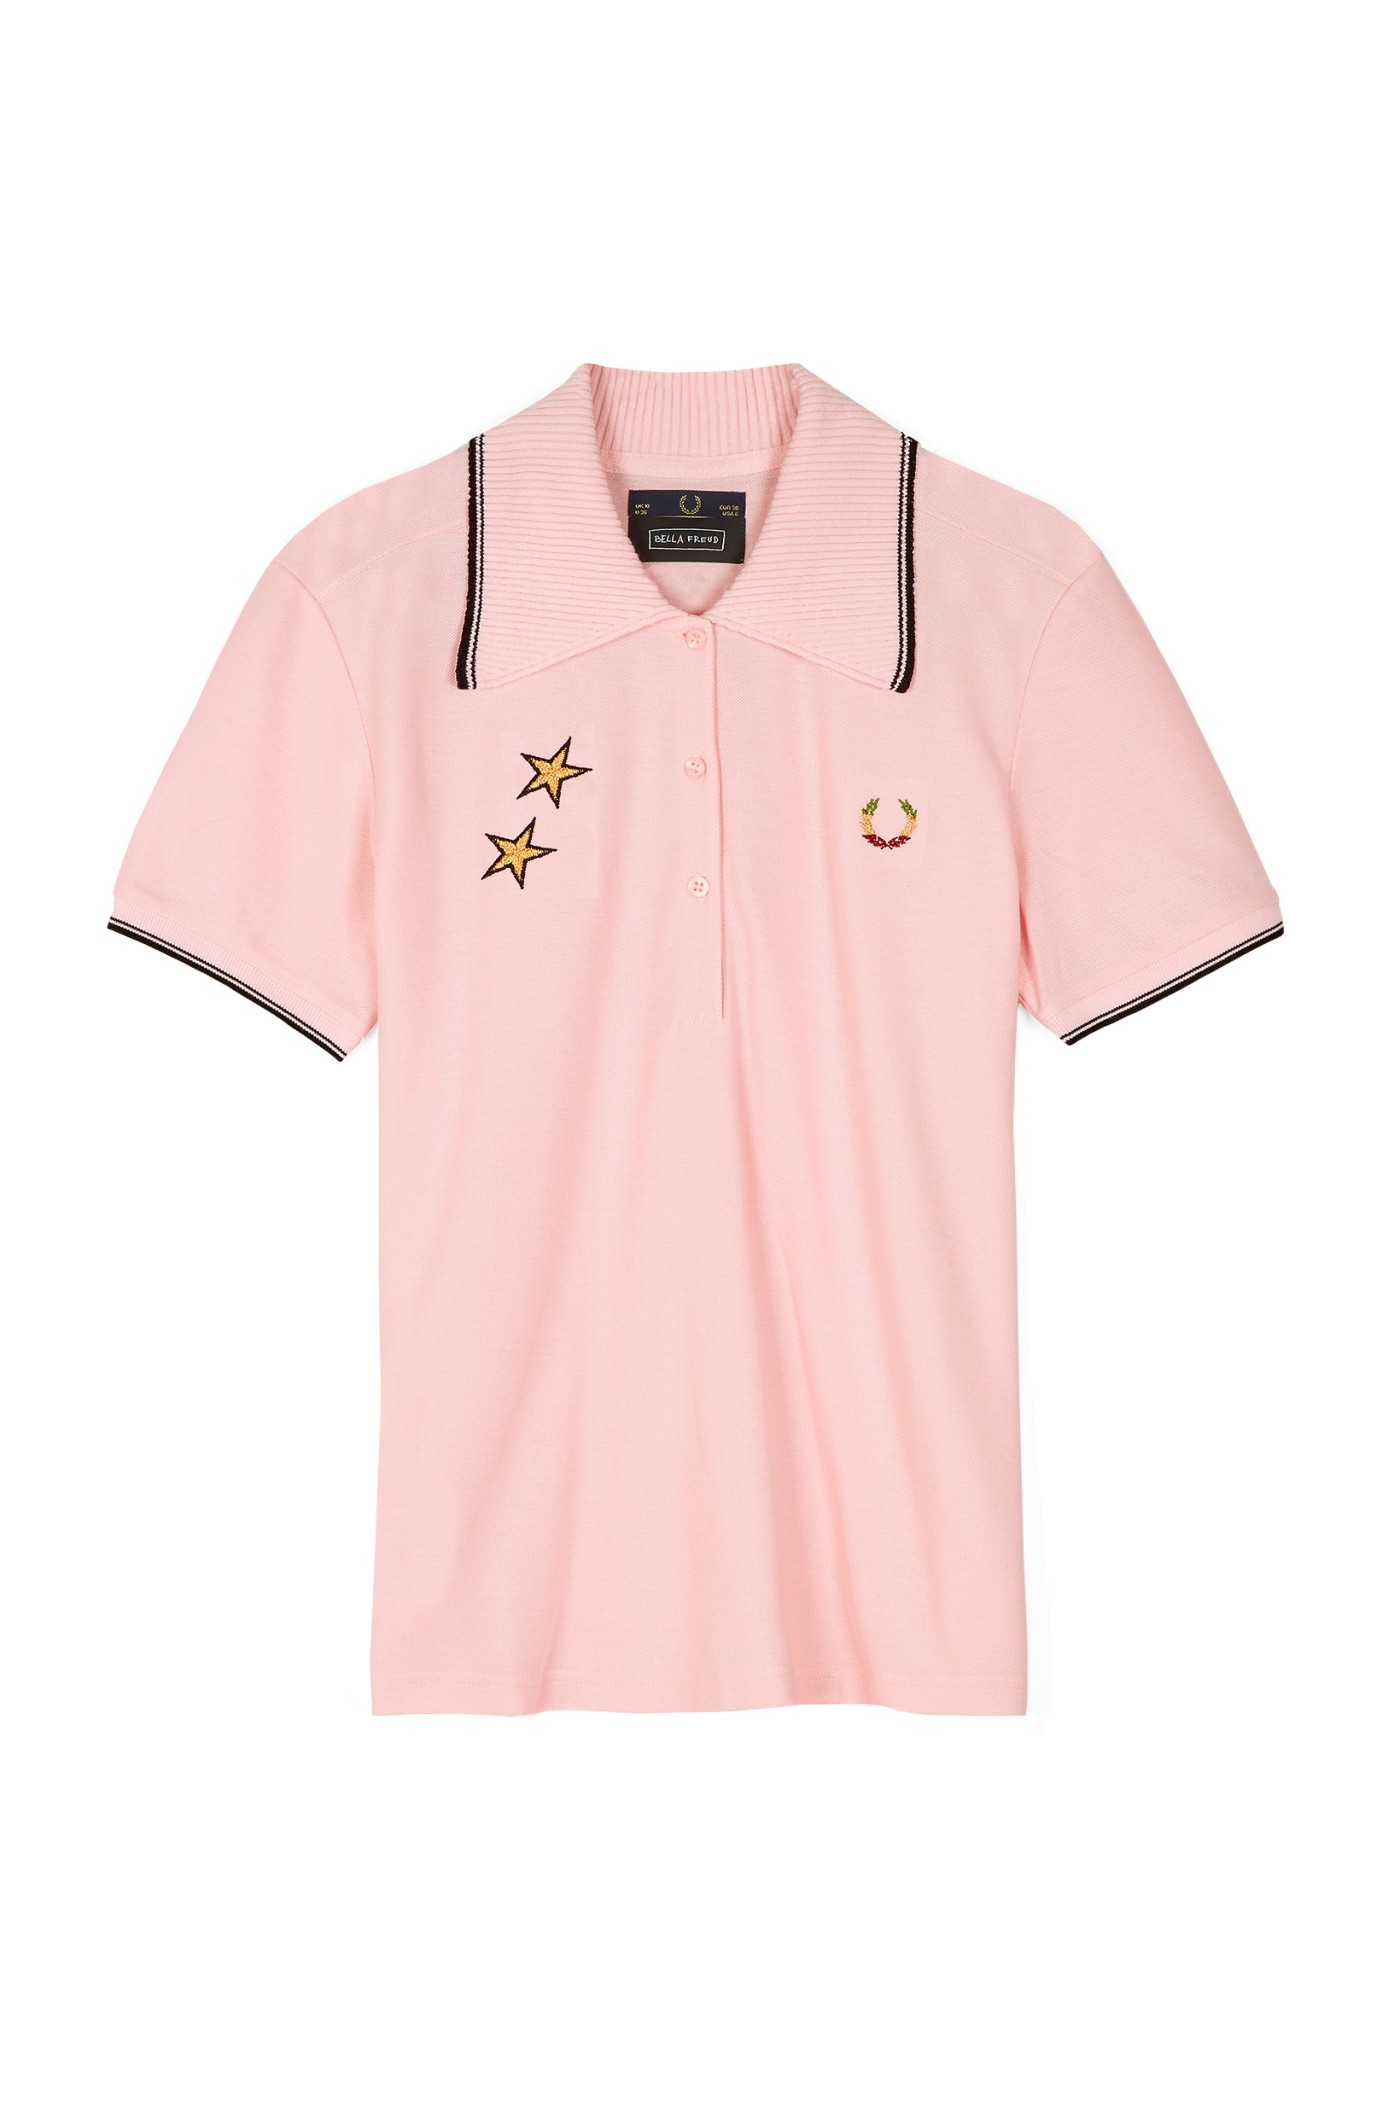 Fred Perry - Bella Freud Star Embroidered Piqué Shirt Soft Pink